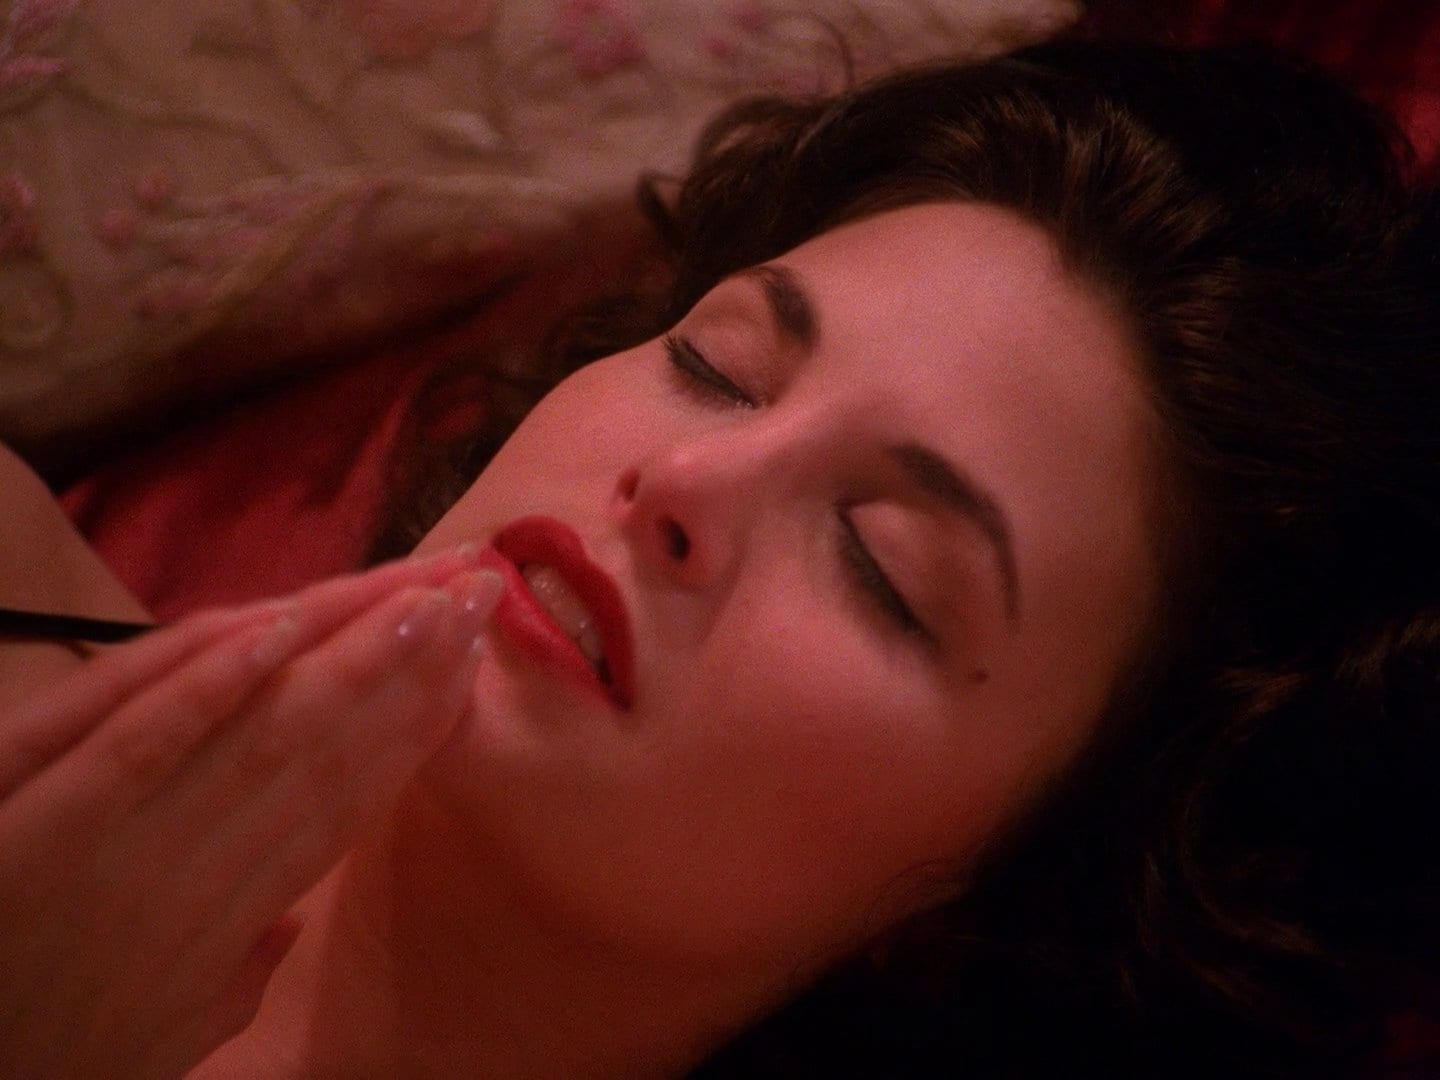 Audrey, Audrey Horne, Prayer, One Eyed Jack's, Twin Peaks